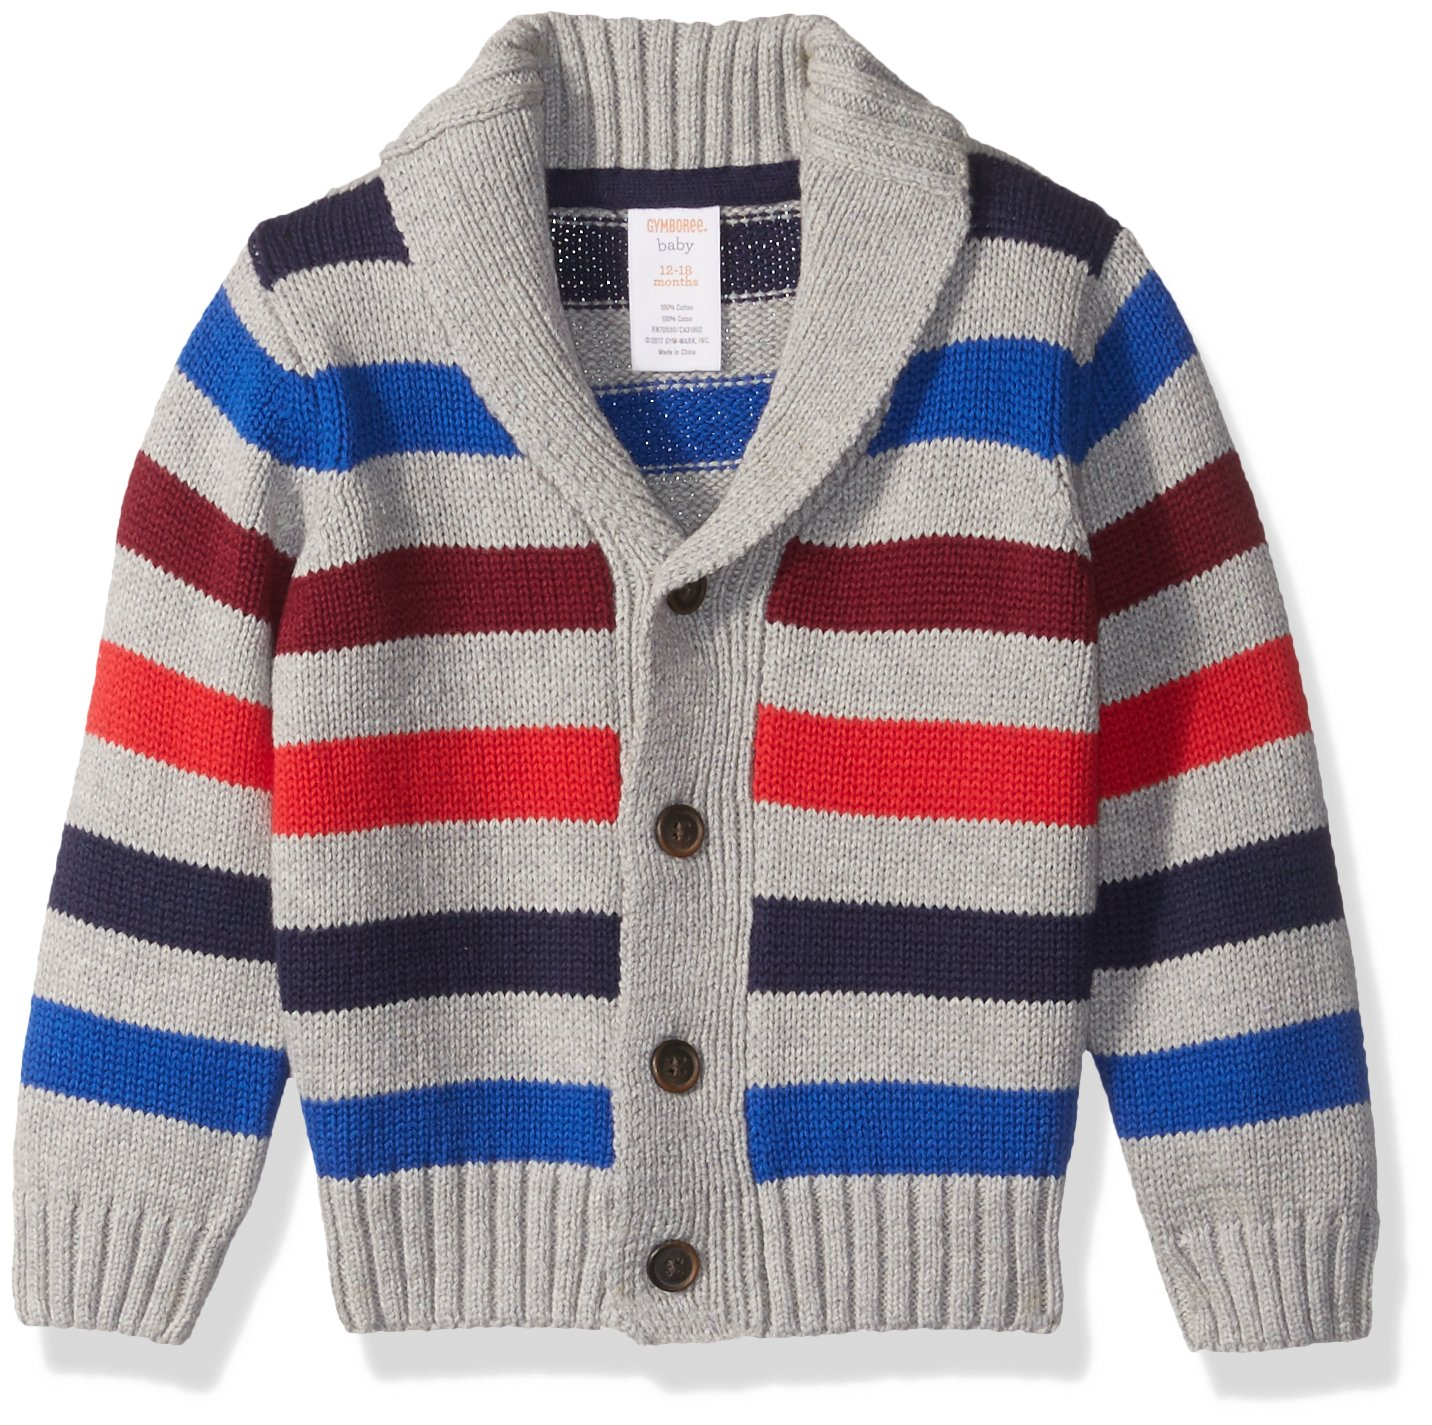 Gymboree Boys' Shawl Cardigan